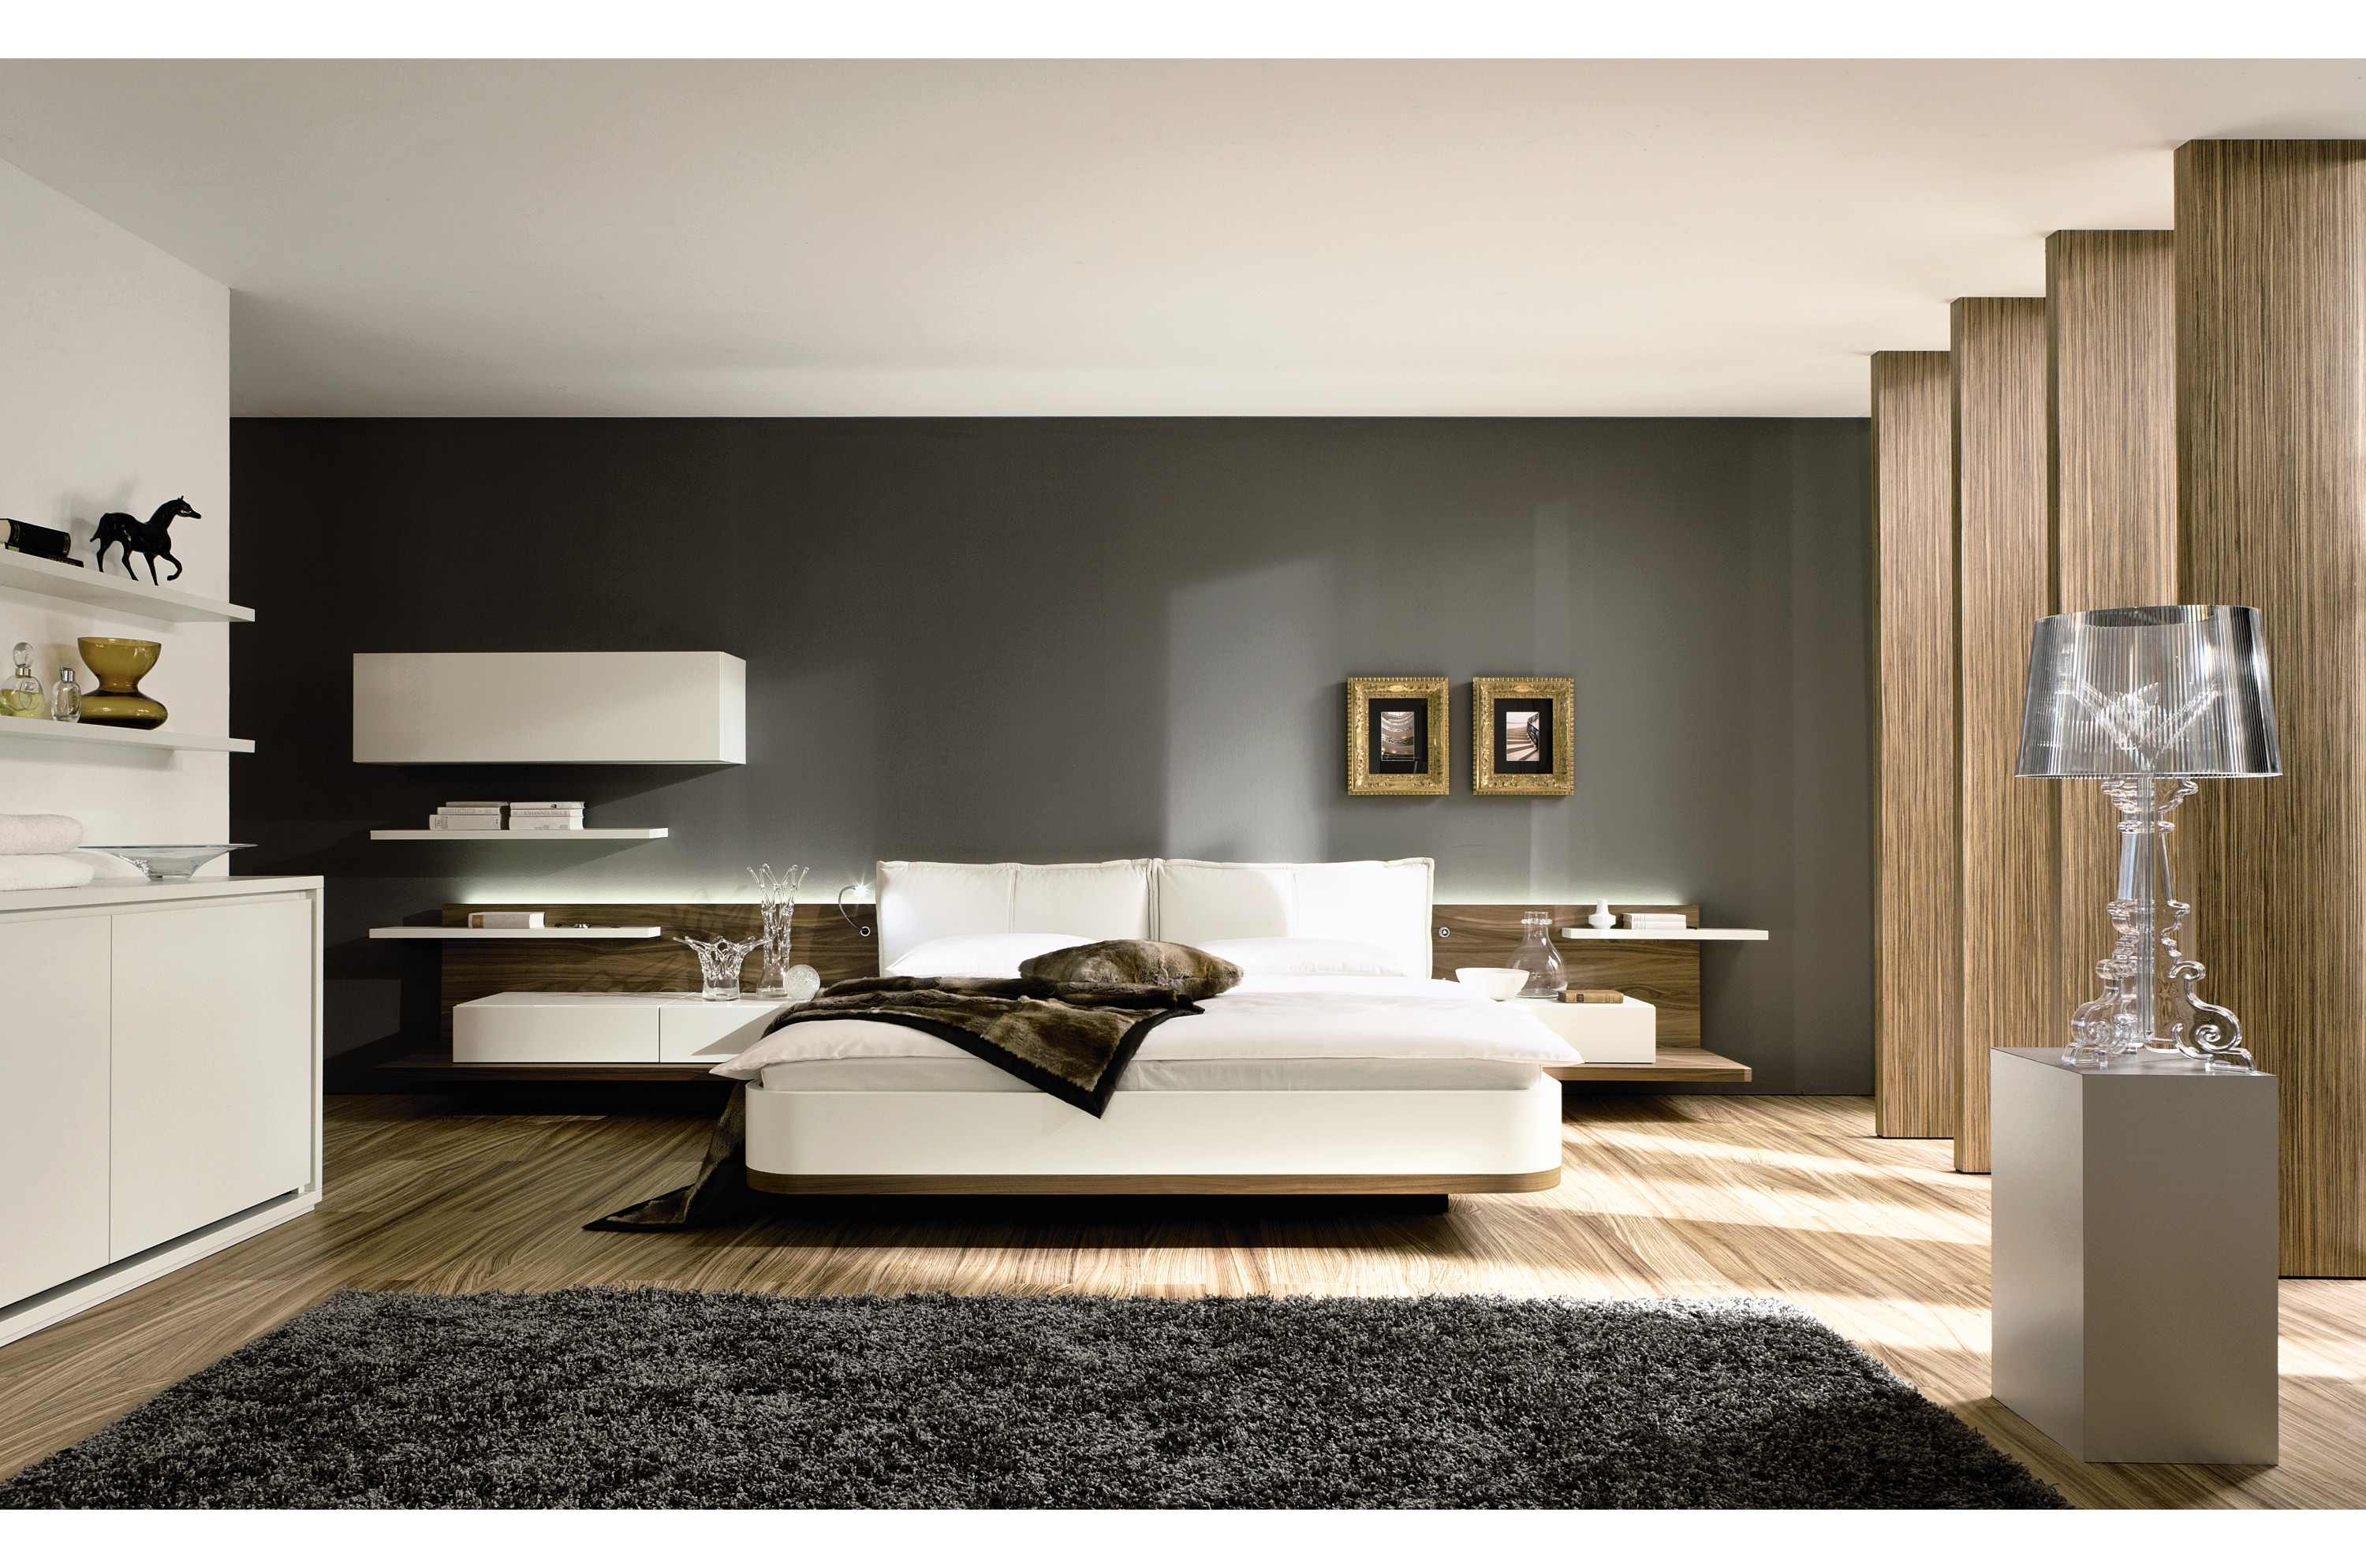 Modern bedroom innovation bedroom ideas interior design and many kodok demo - Ideas bedroom decor ...